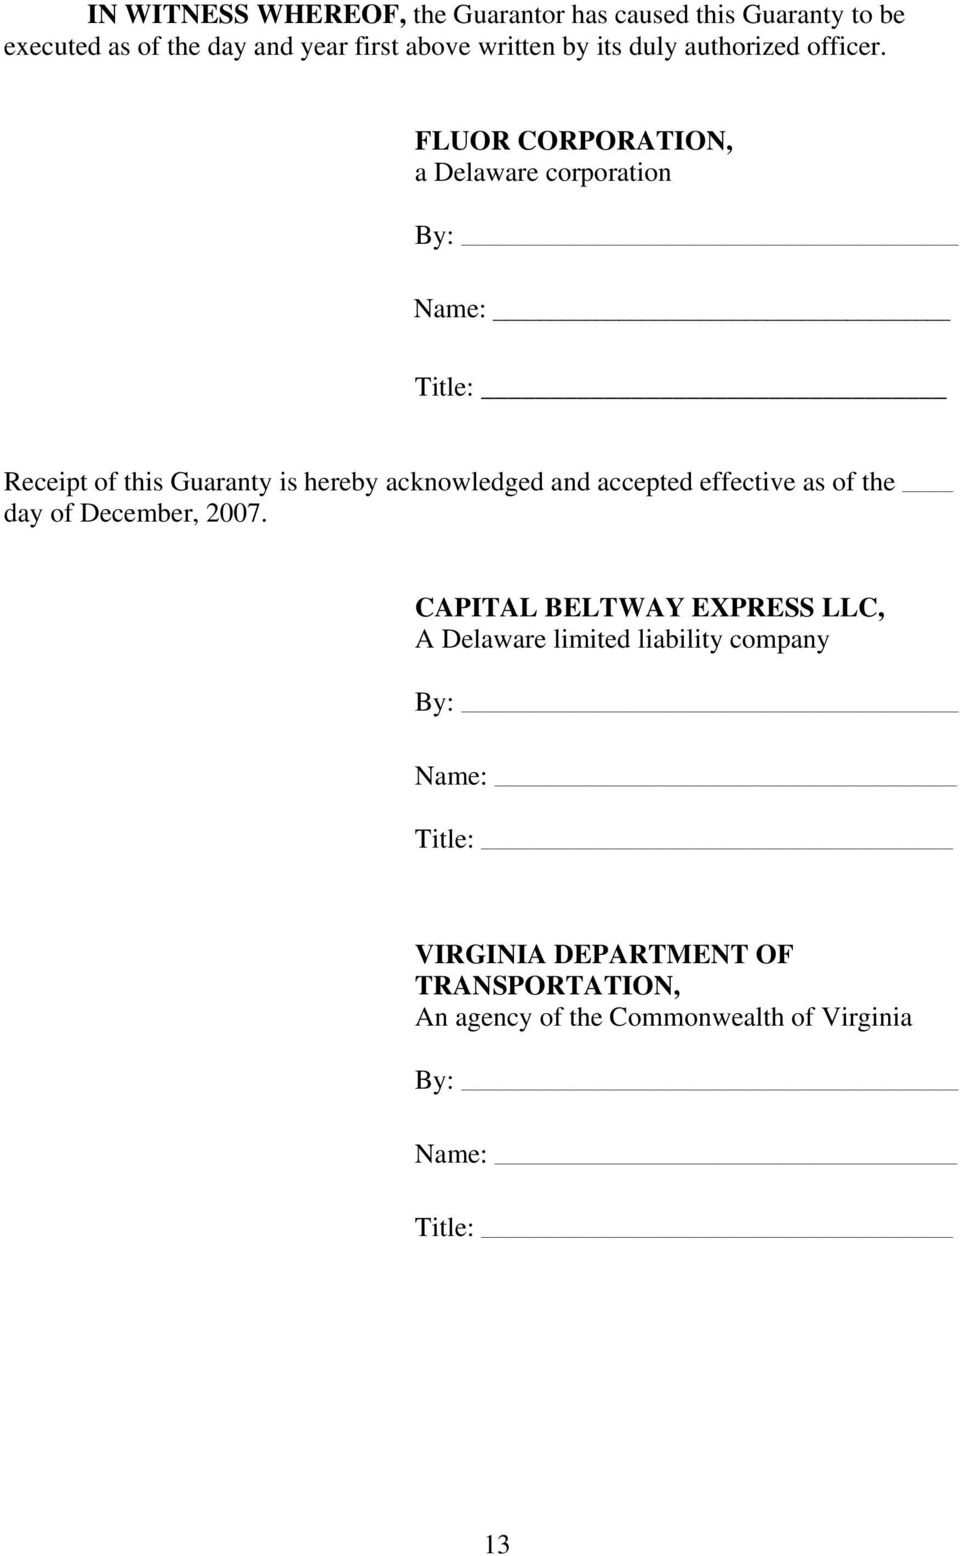 FLUOR CORPORATION, a Delaware corporation By: Name: Title: Receipt of this Guaranty is hereby acknowledged and accepted